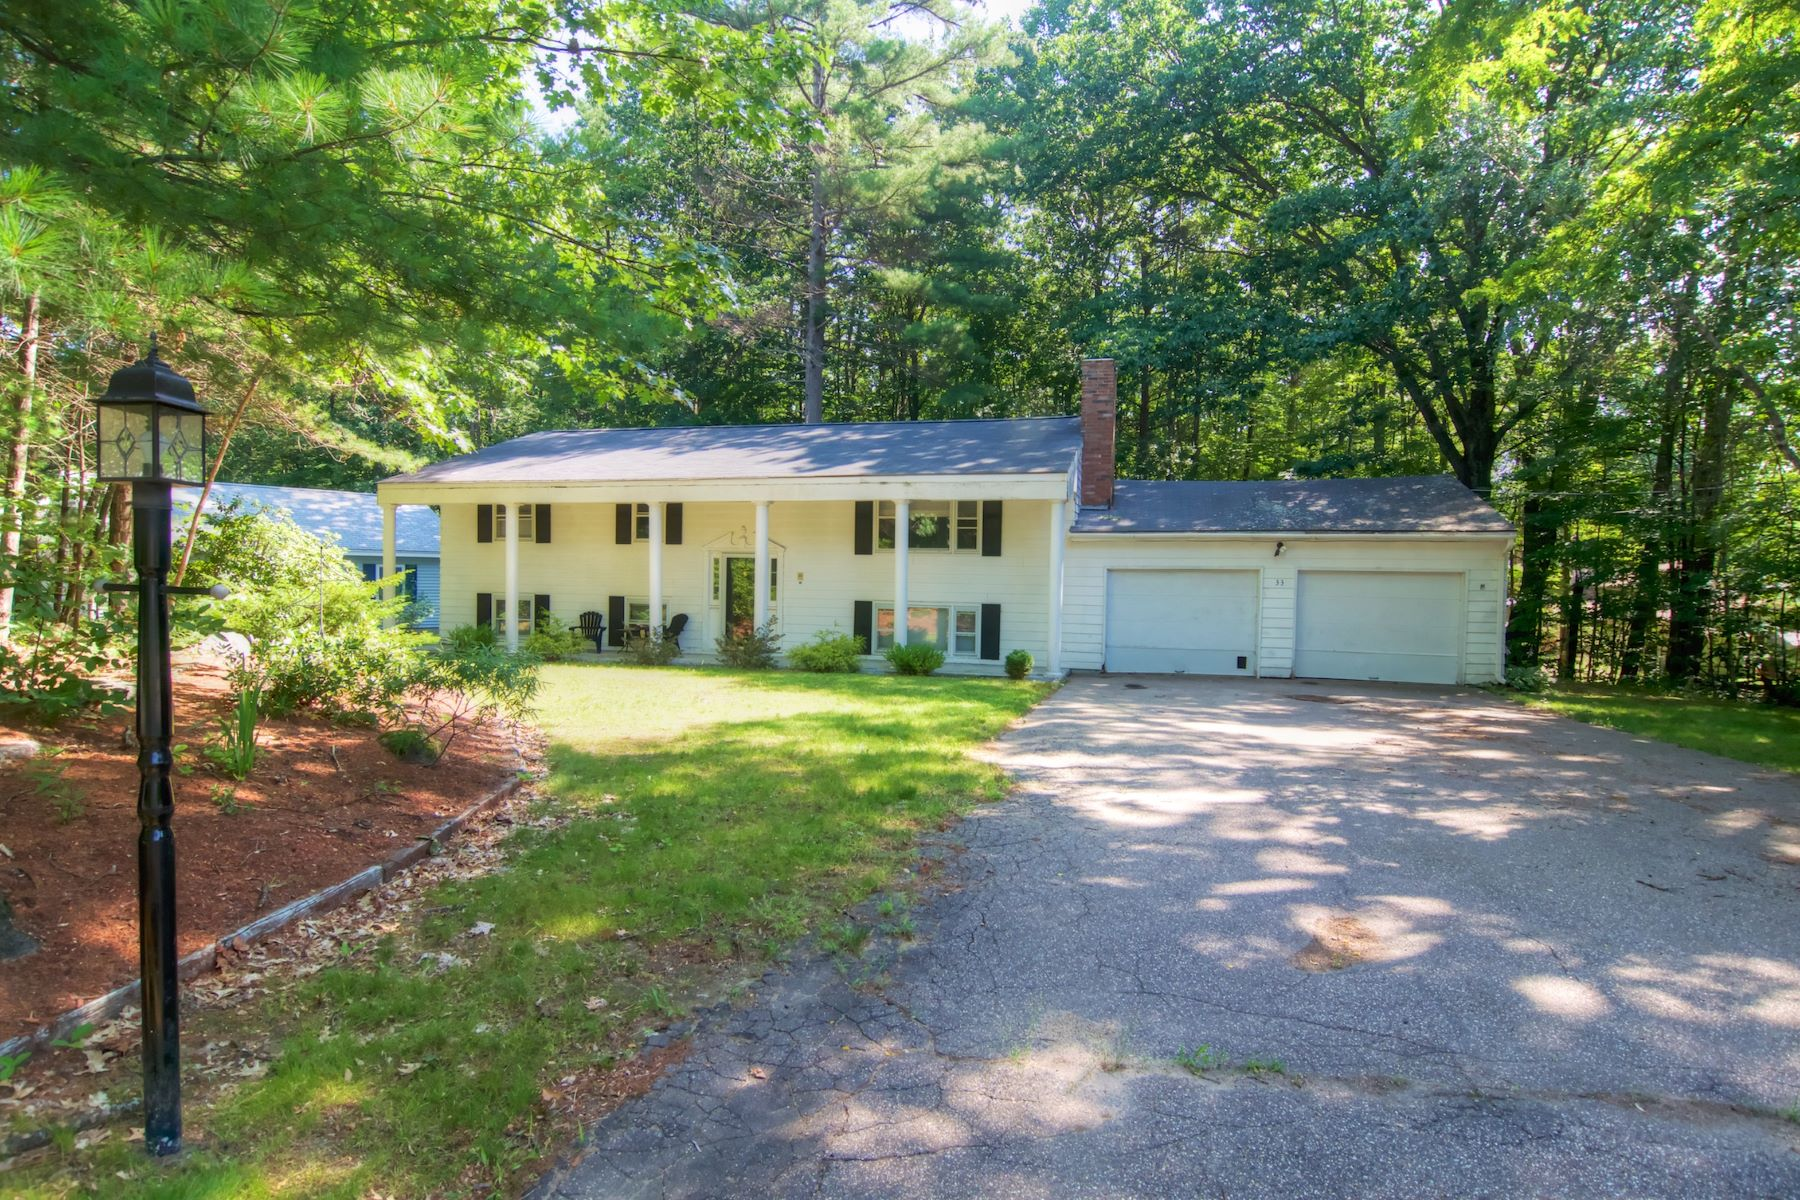 Single Family Home for Sale at 33 Woodvale, Laconia Laconia, New Hampshire, 03246 United States